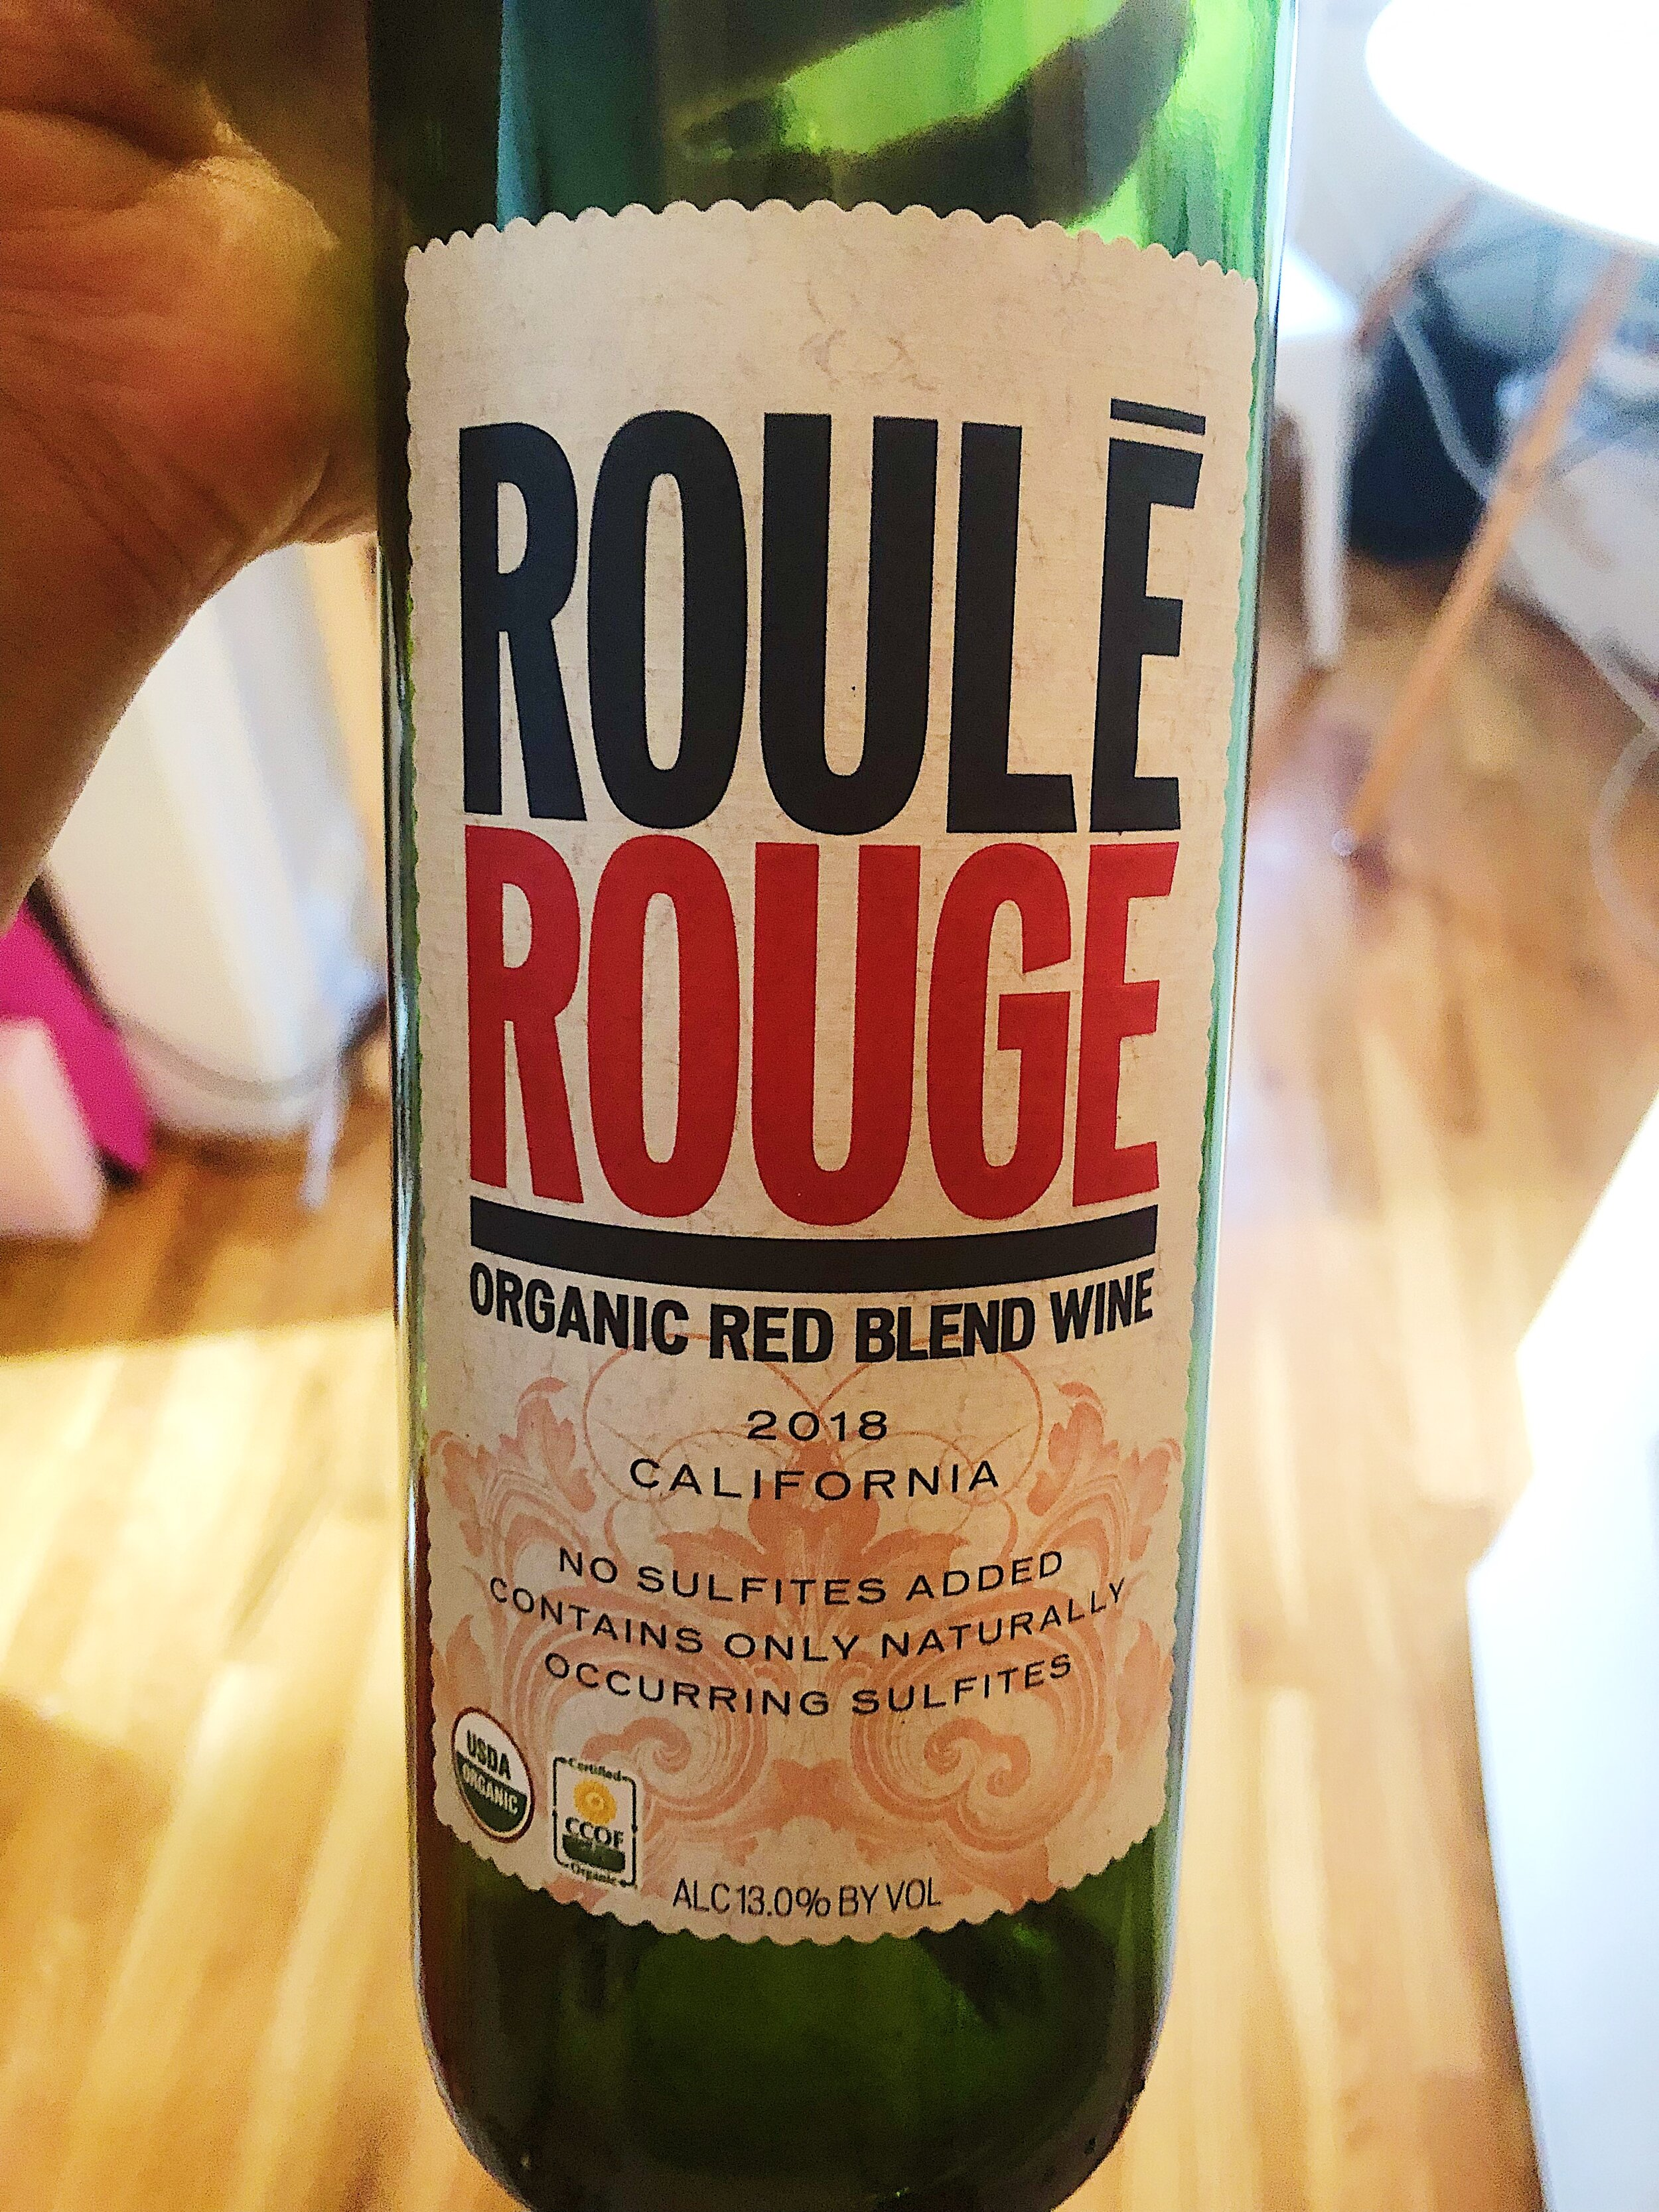 I liked this bottle (also organic!!!) a bit more. Never thought I'd be a red blend drinker, but Organic wine is important to me.